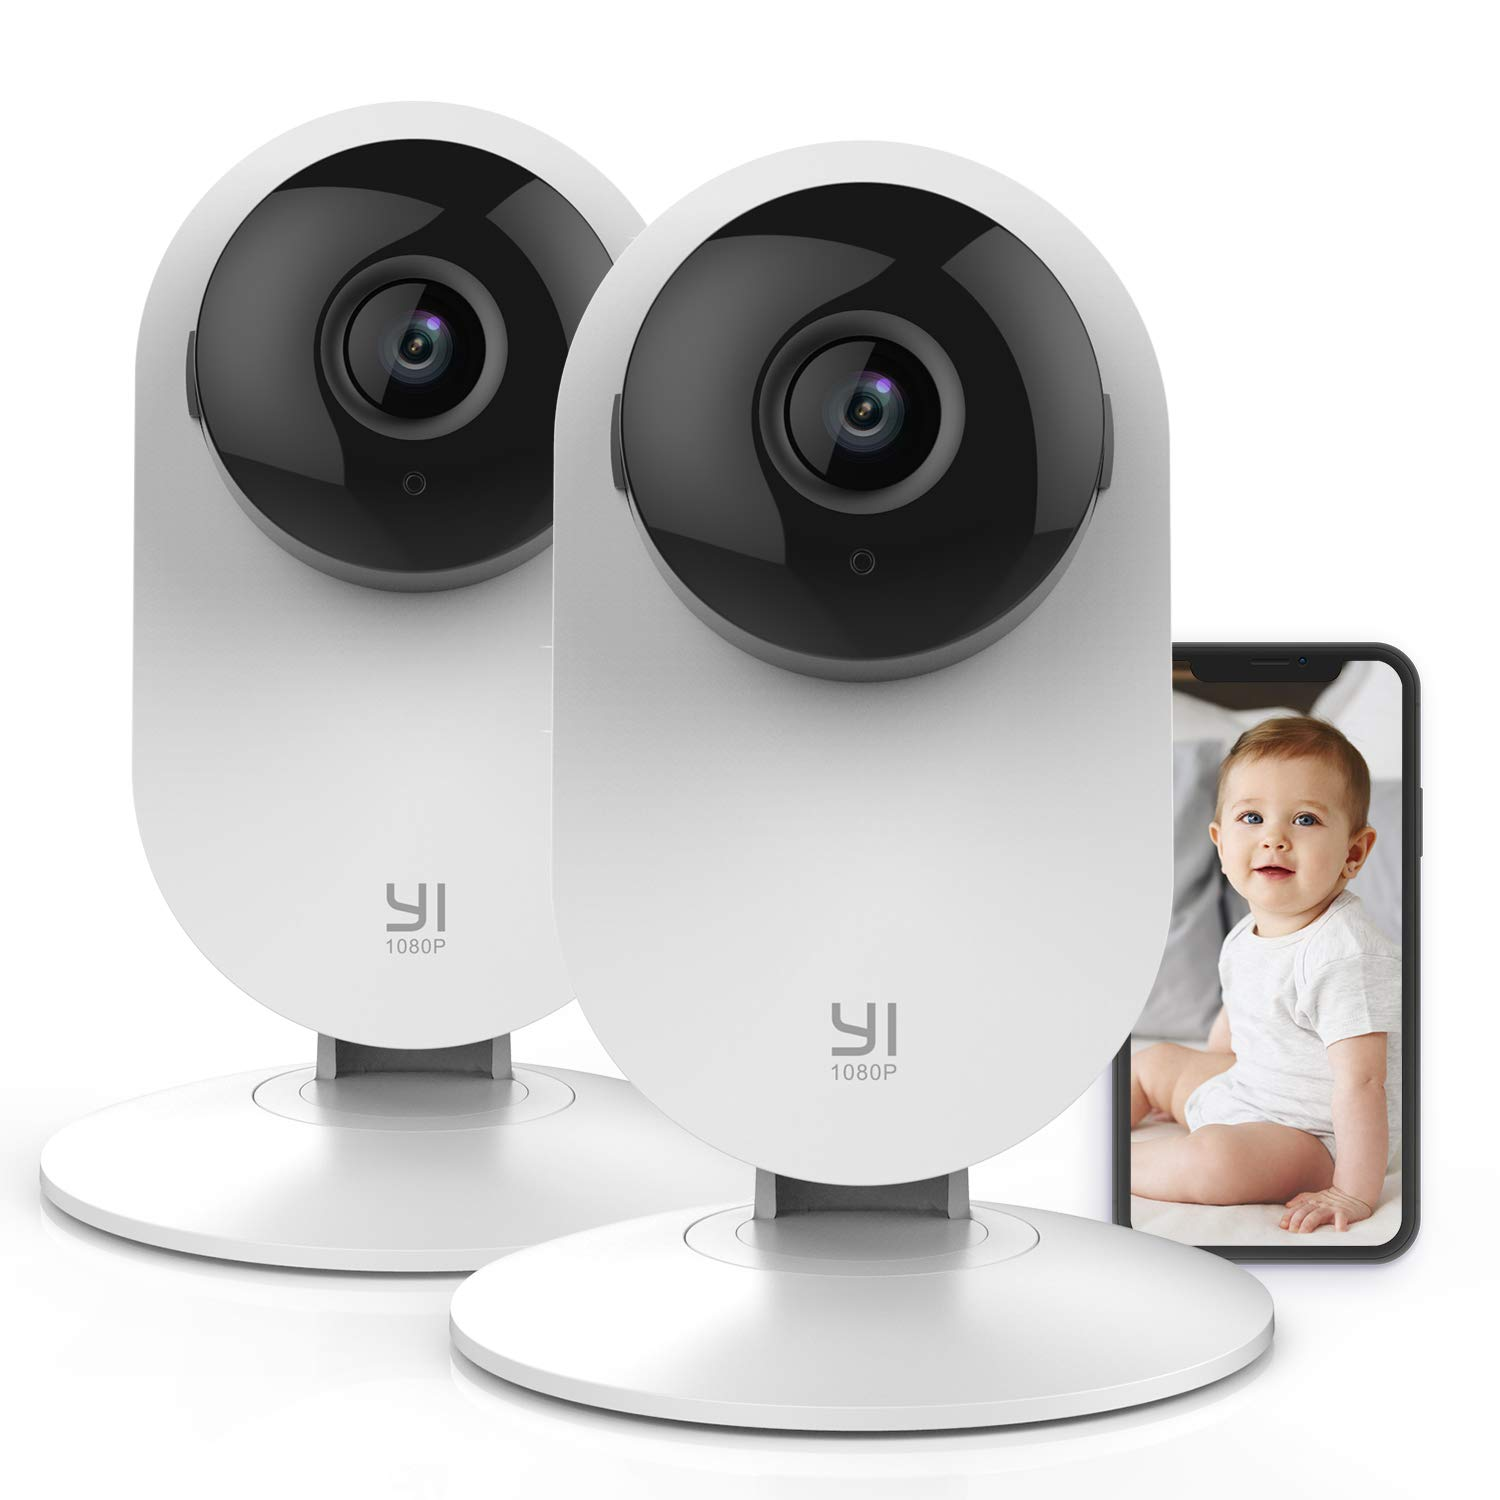 Yi Baby Monitor with Camera and Audio HD WiFi Pet Cam, Sound Motion Human Detection, 2-Way Audio, Smartphone app, Night Vision, Cloud Storage, Nanny Baby Elder, Works with Alexa 2pc